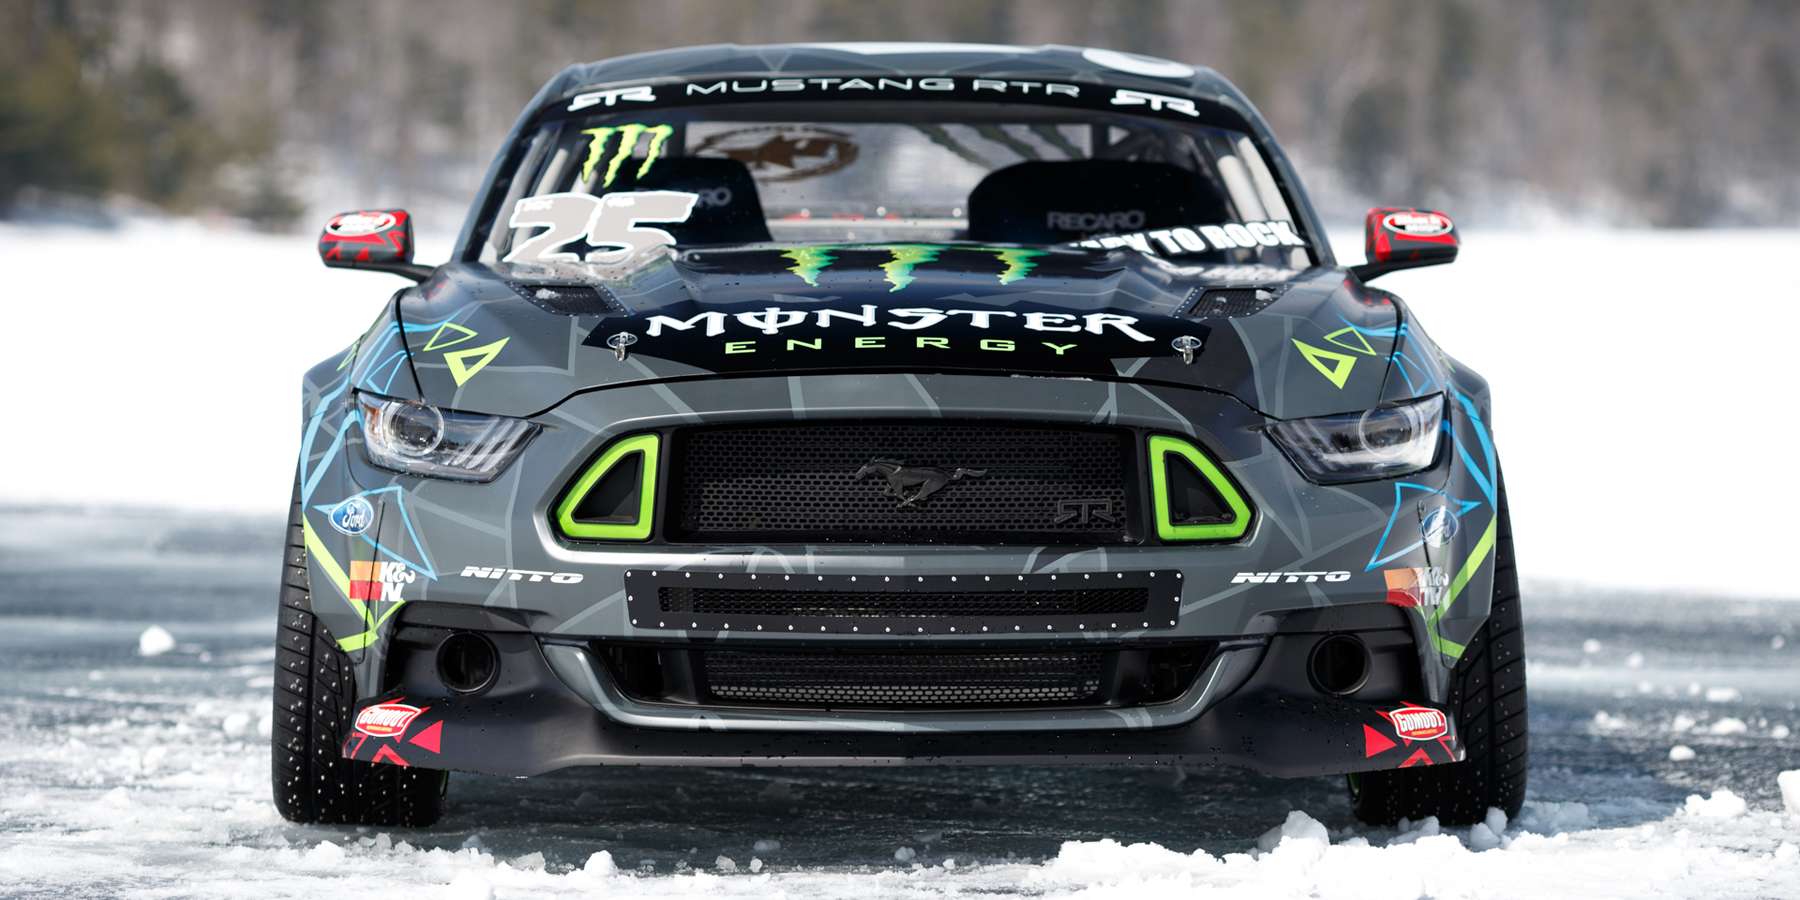 Check Out Vaughn Gittin Jr S 2015 Mustang Rtr Drift Car